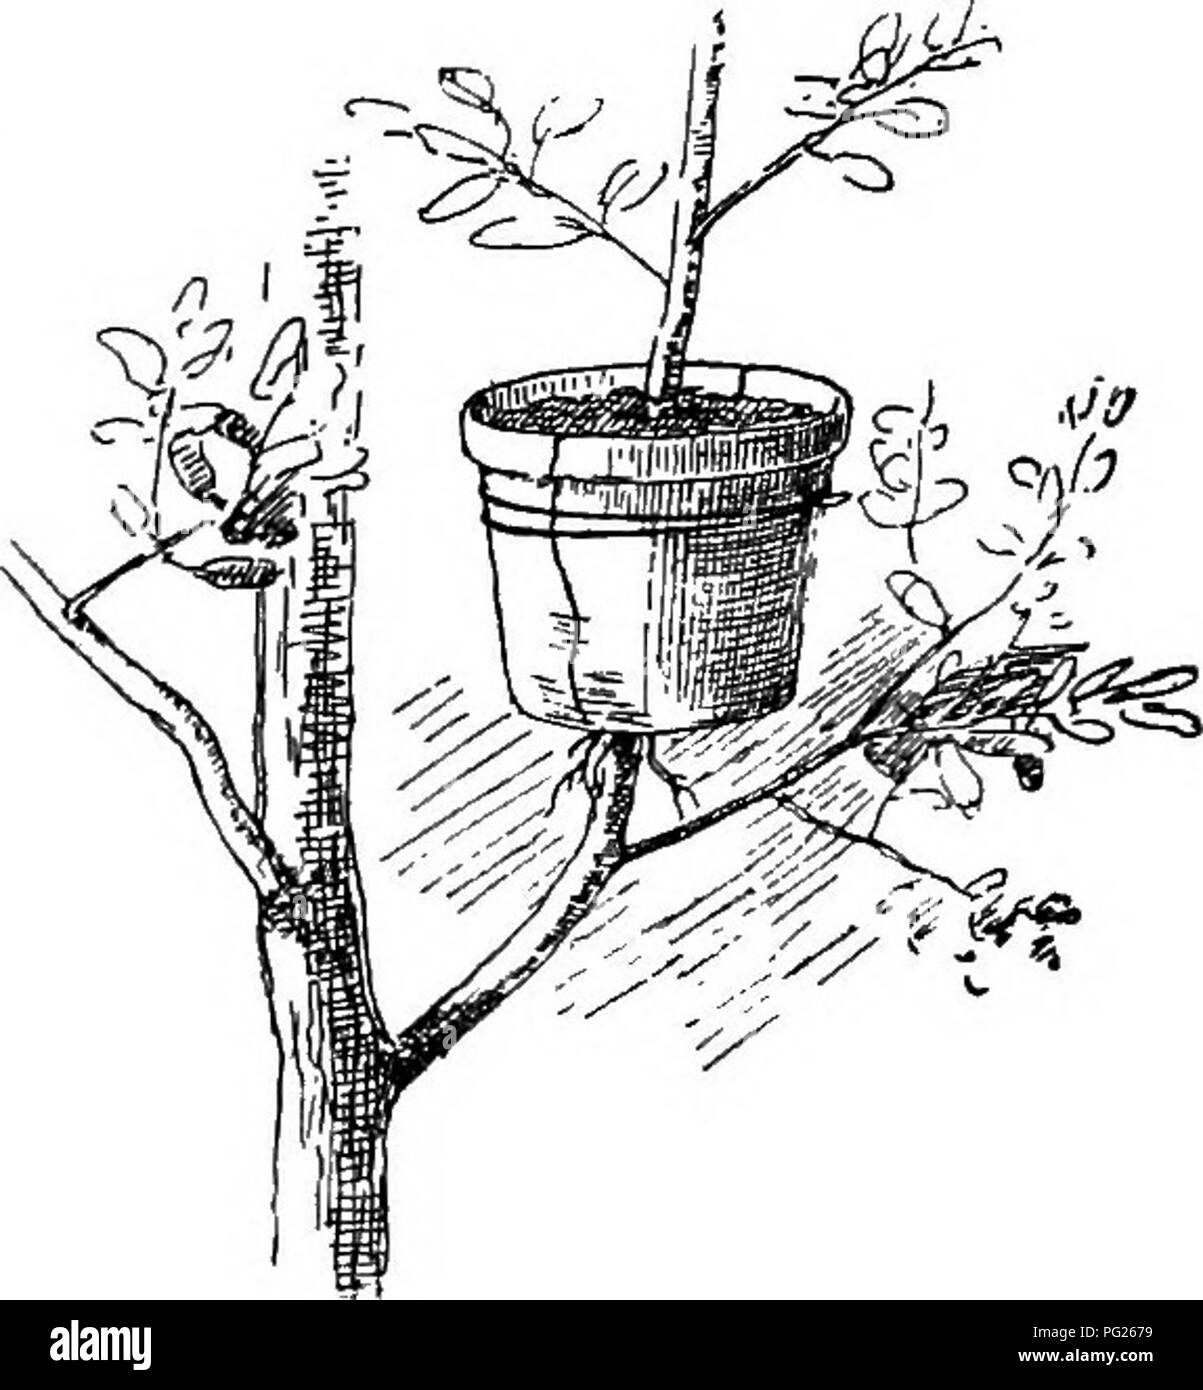 """. The nursery-book; a complete guide to the multiplication of plants ... Gardening; Plant propagation. 40 LAYERAGE. shrubs may be layered in the fall, either early or late, and if an incision is made, a callus will have formed by spring. If rapid multiplication is desired, the soft and growing shoots may be layered during the summer. This opera- tion is variously known as """"summer,"""" """"her- baceous,"""" """"green"""" and """"soft"""" layering. Comparatively feeble plants usually result from this practice, and it is not in common favor. In glass houses,. 34. Pot-layerage.  - Stock Image"""